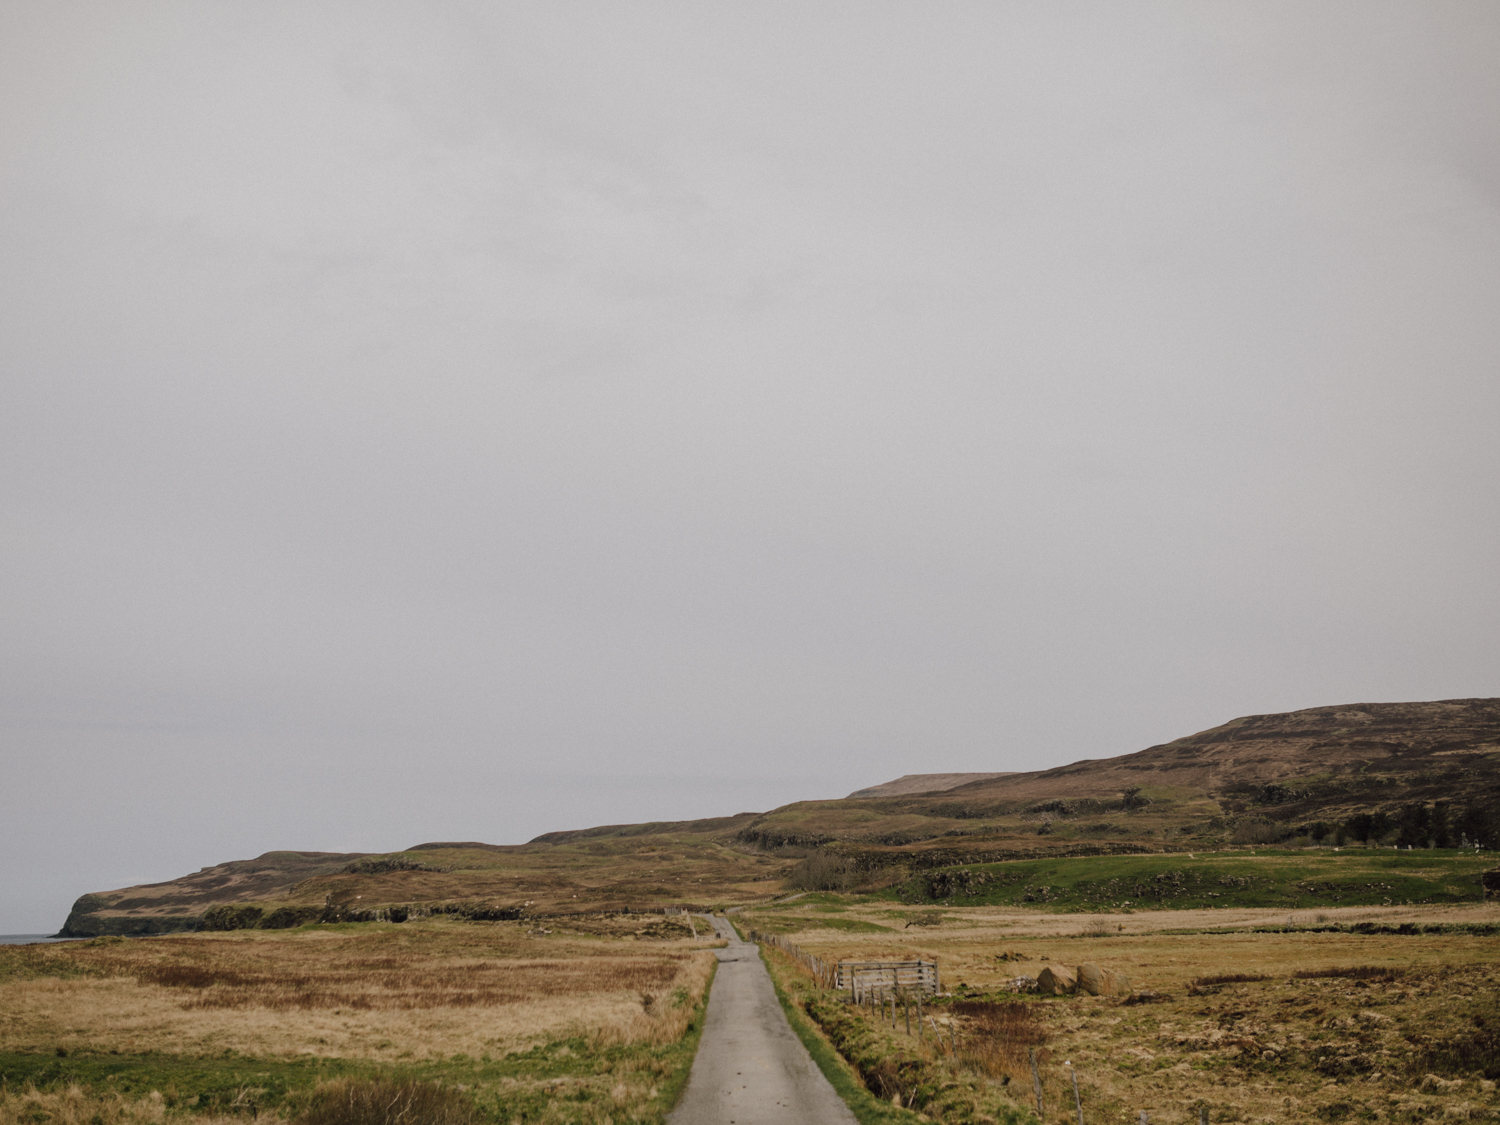 capyture-wedding-photographer-destination-nature-intimate-wedding-isle-of-skye-scotland-174